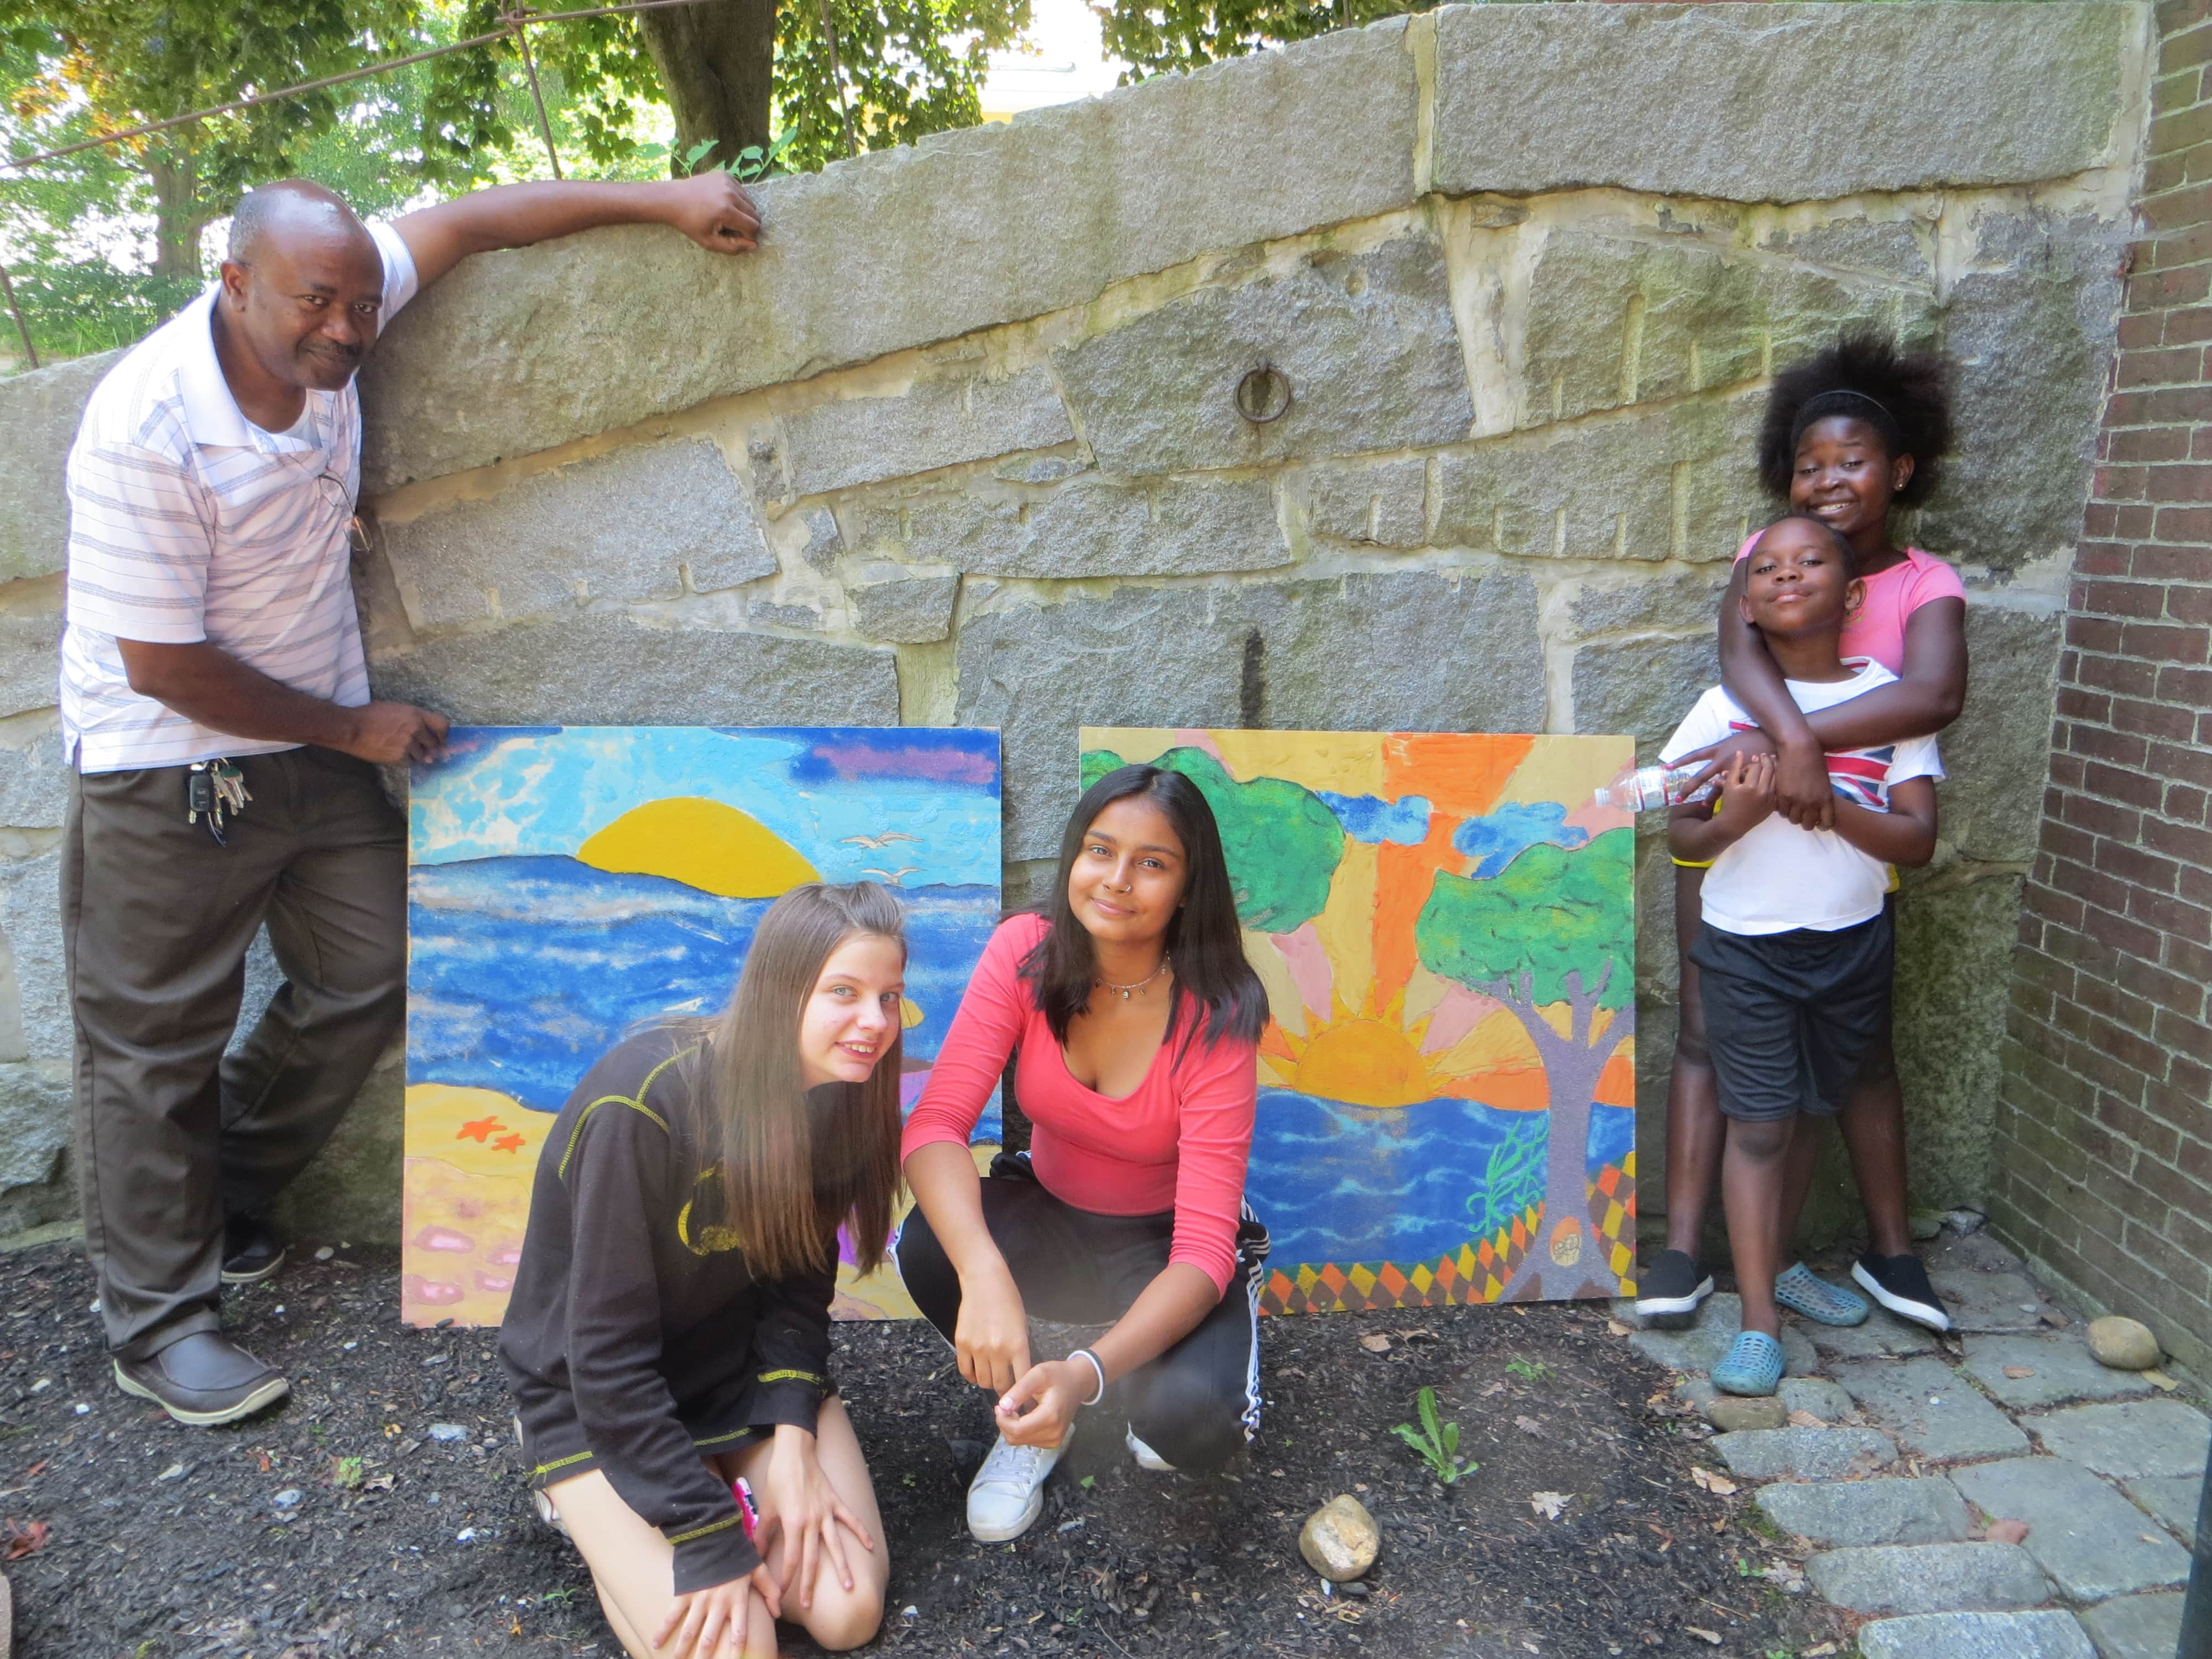 2019 08 20 12 Mentees Willow Stuti Jose Clementine with Artist Segun drying pieces outside by TS min